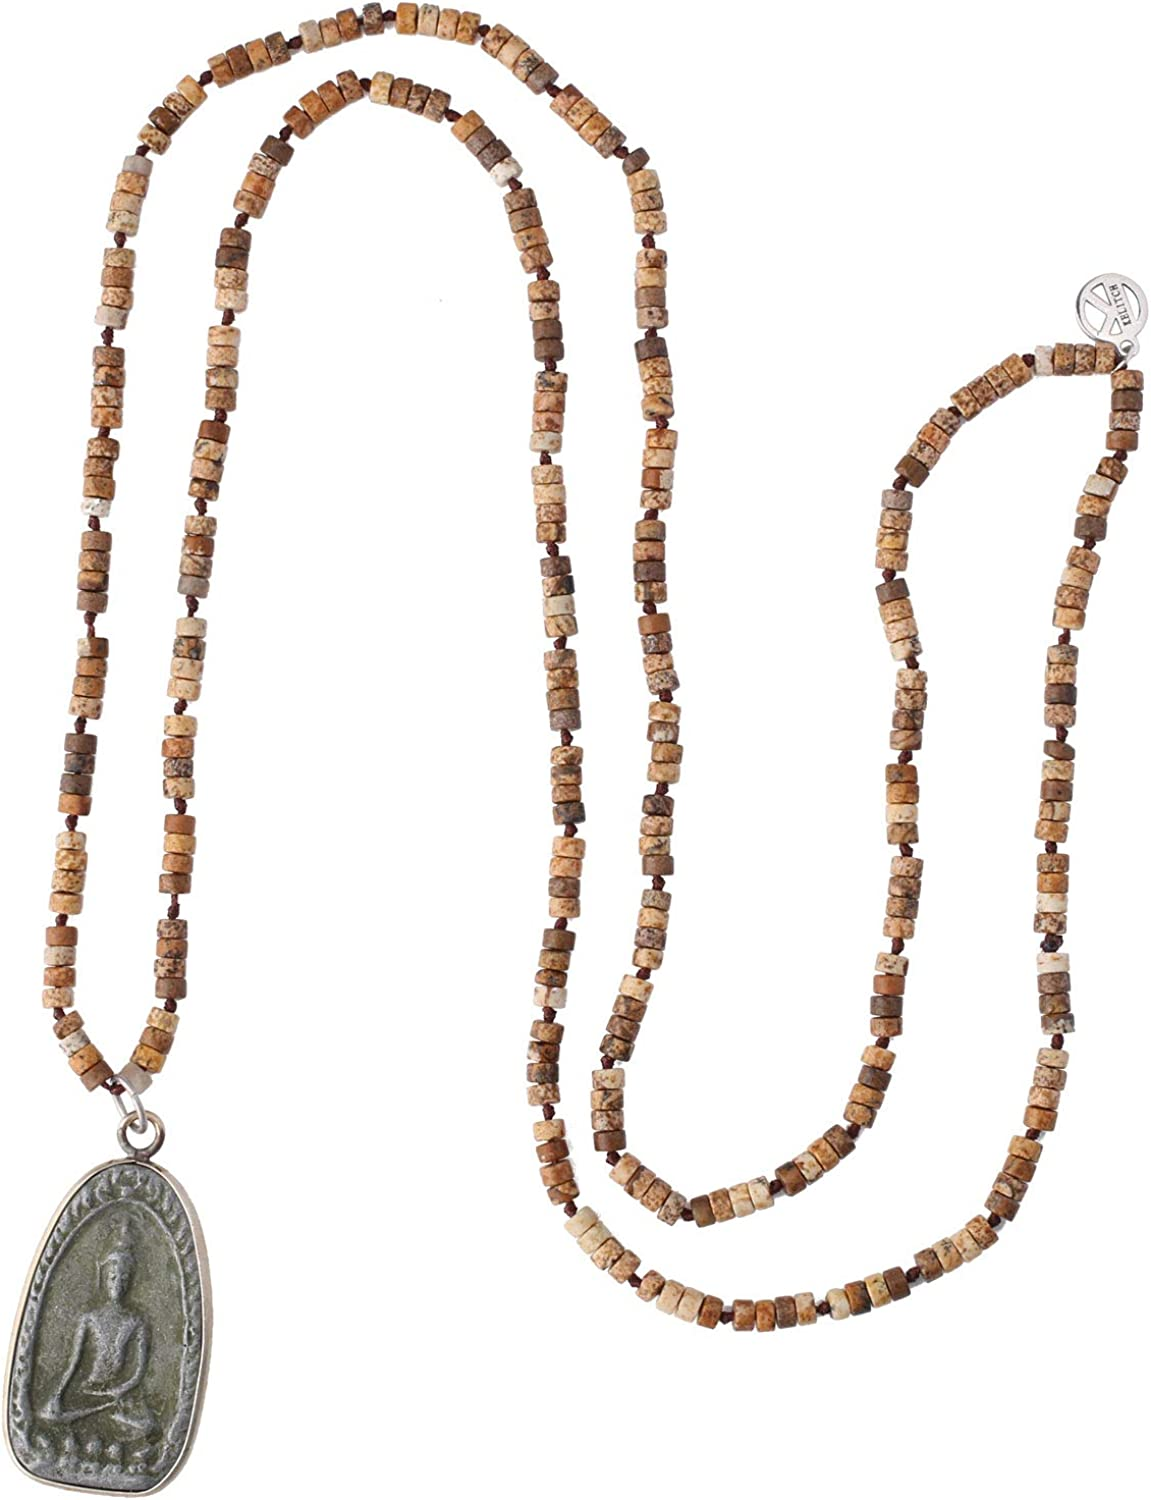 KELITCH Buddha Pendant Necklaces Natural Stone Beaded Necklaces Handmade Long Chain Strands Necklaces Jewelry for Women Girls